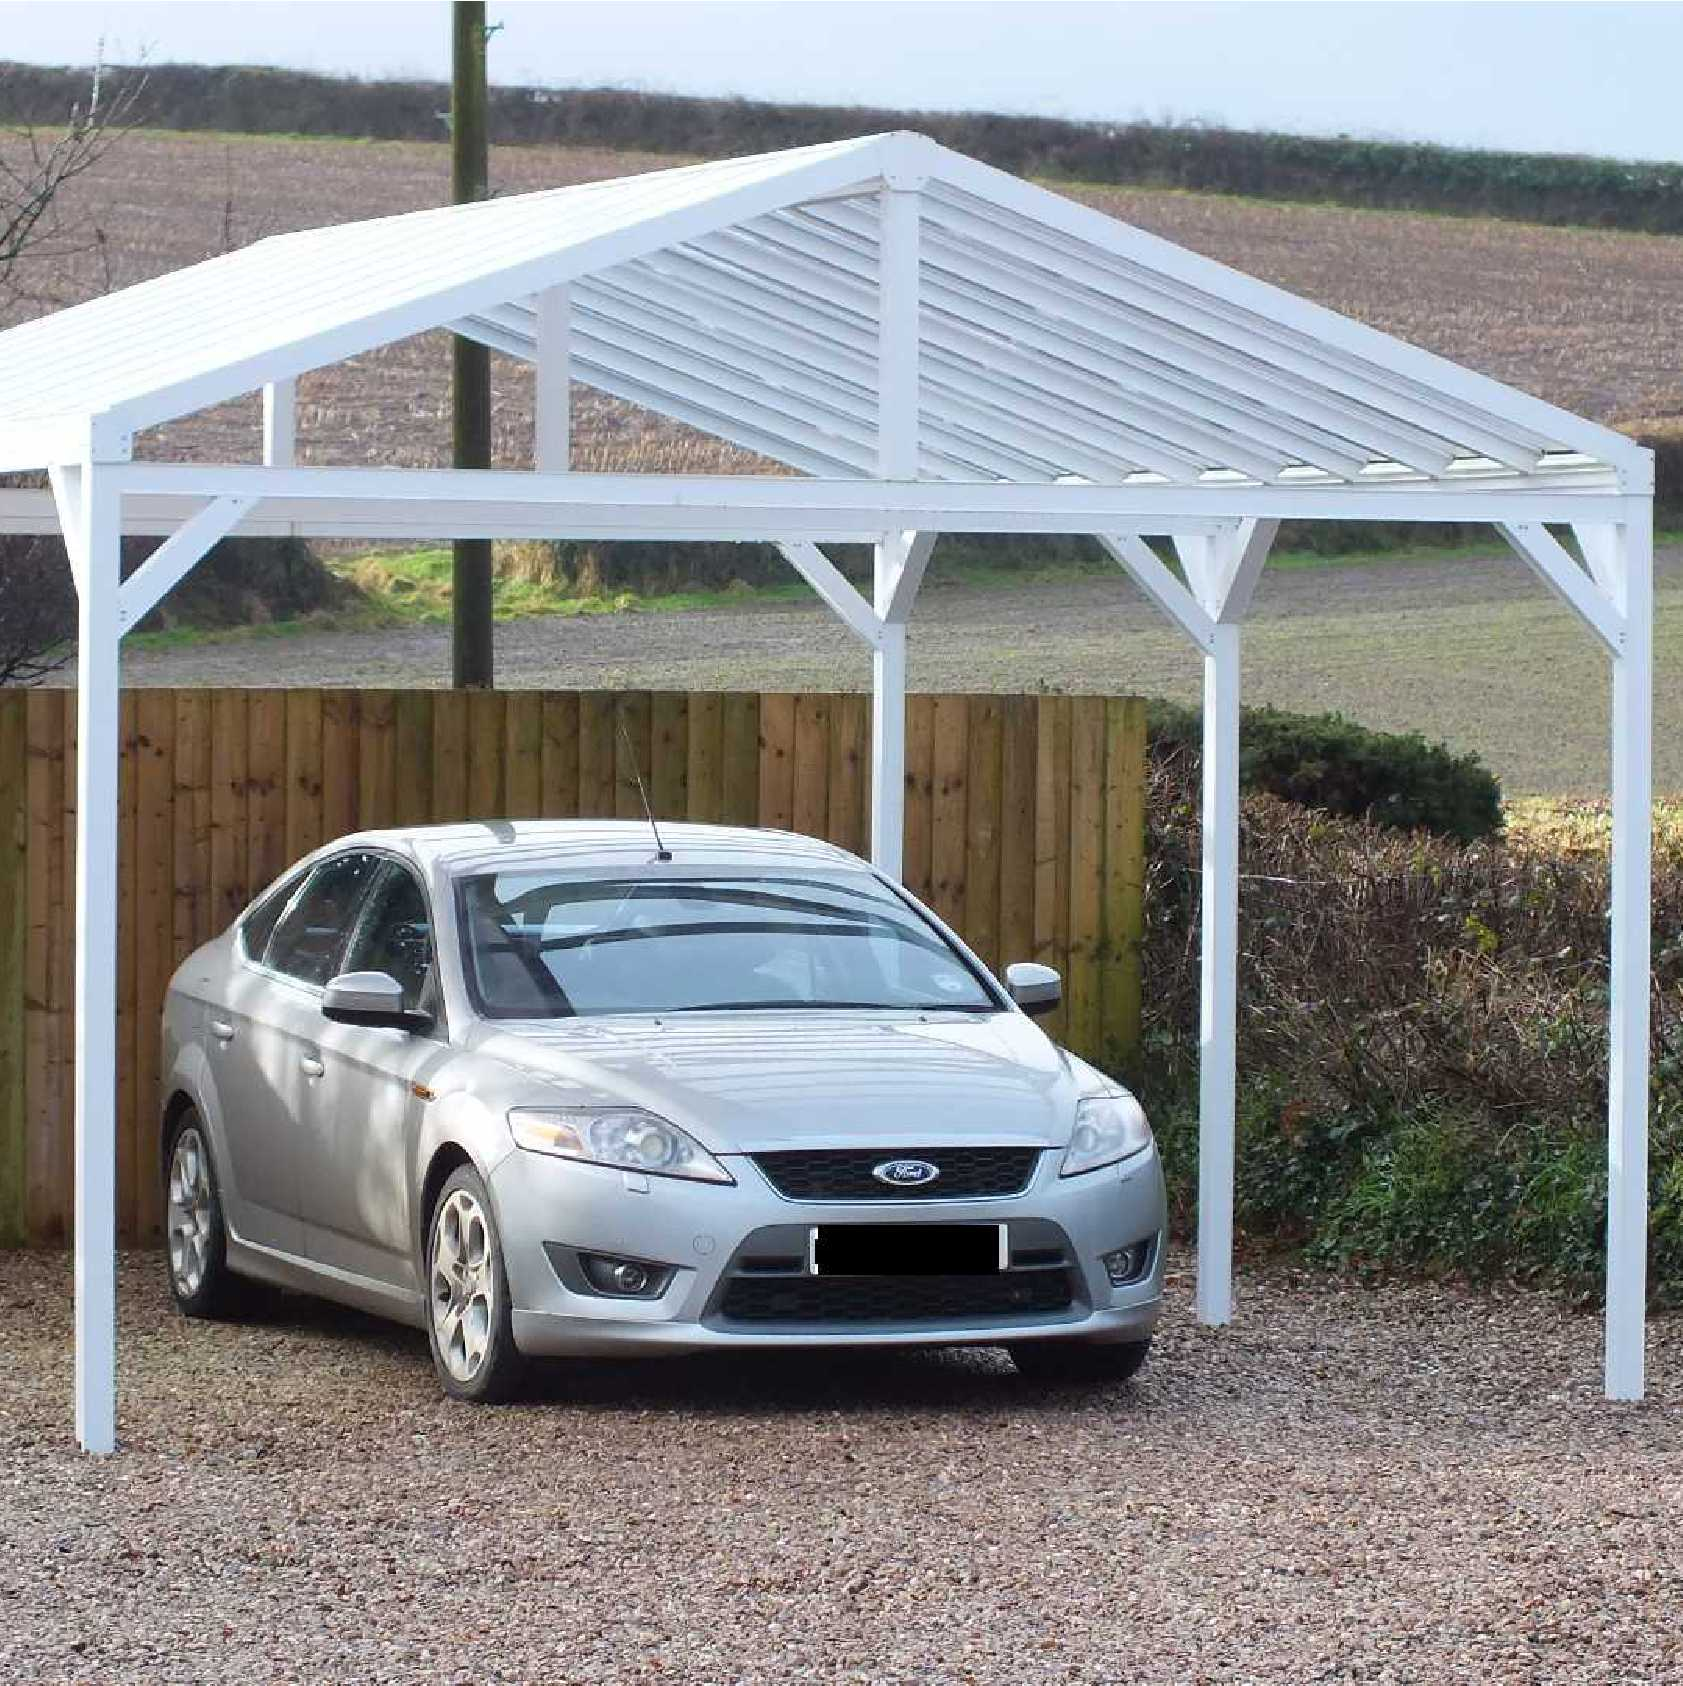 Buy Omega Smart Free-Standing, Gable-Roof (type 1) Canopy with 16mm Polycarbonate Glazing - 5.2m (W) x 4.0m (P), (6) Supporting Posts online today